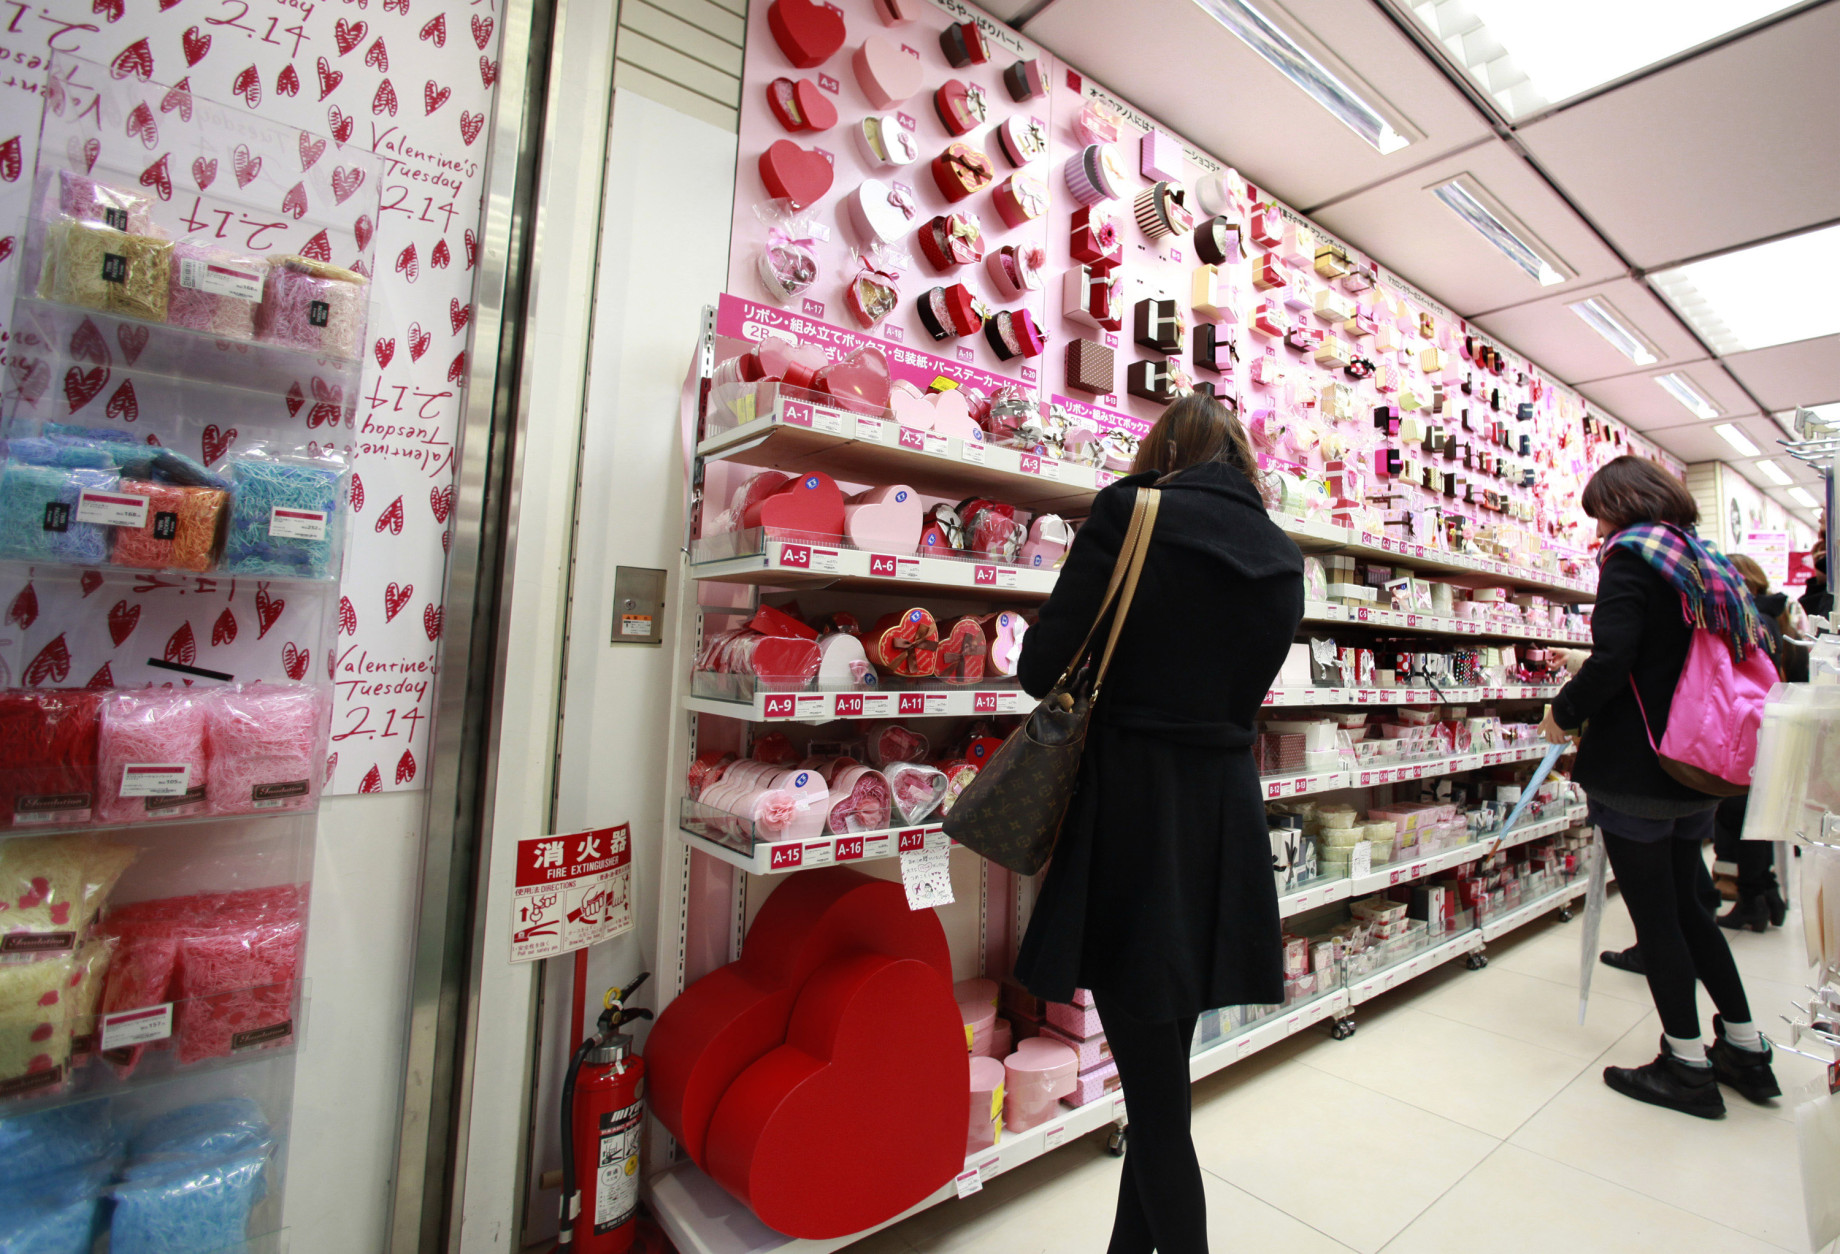 Surprising health benefits of Valentine's Day traditions